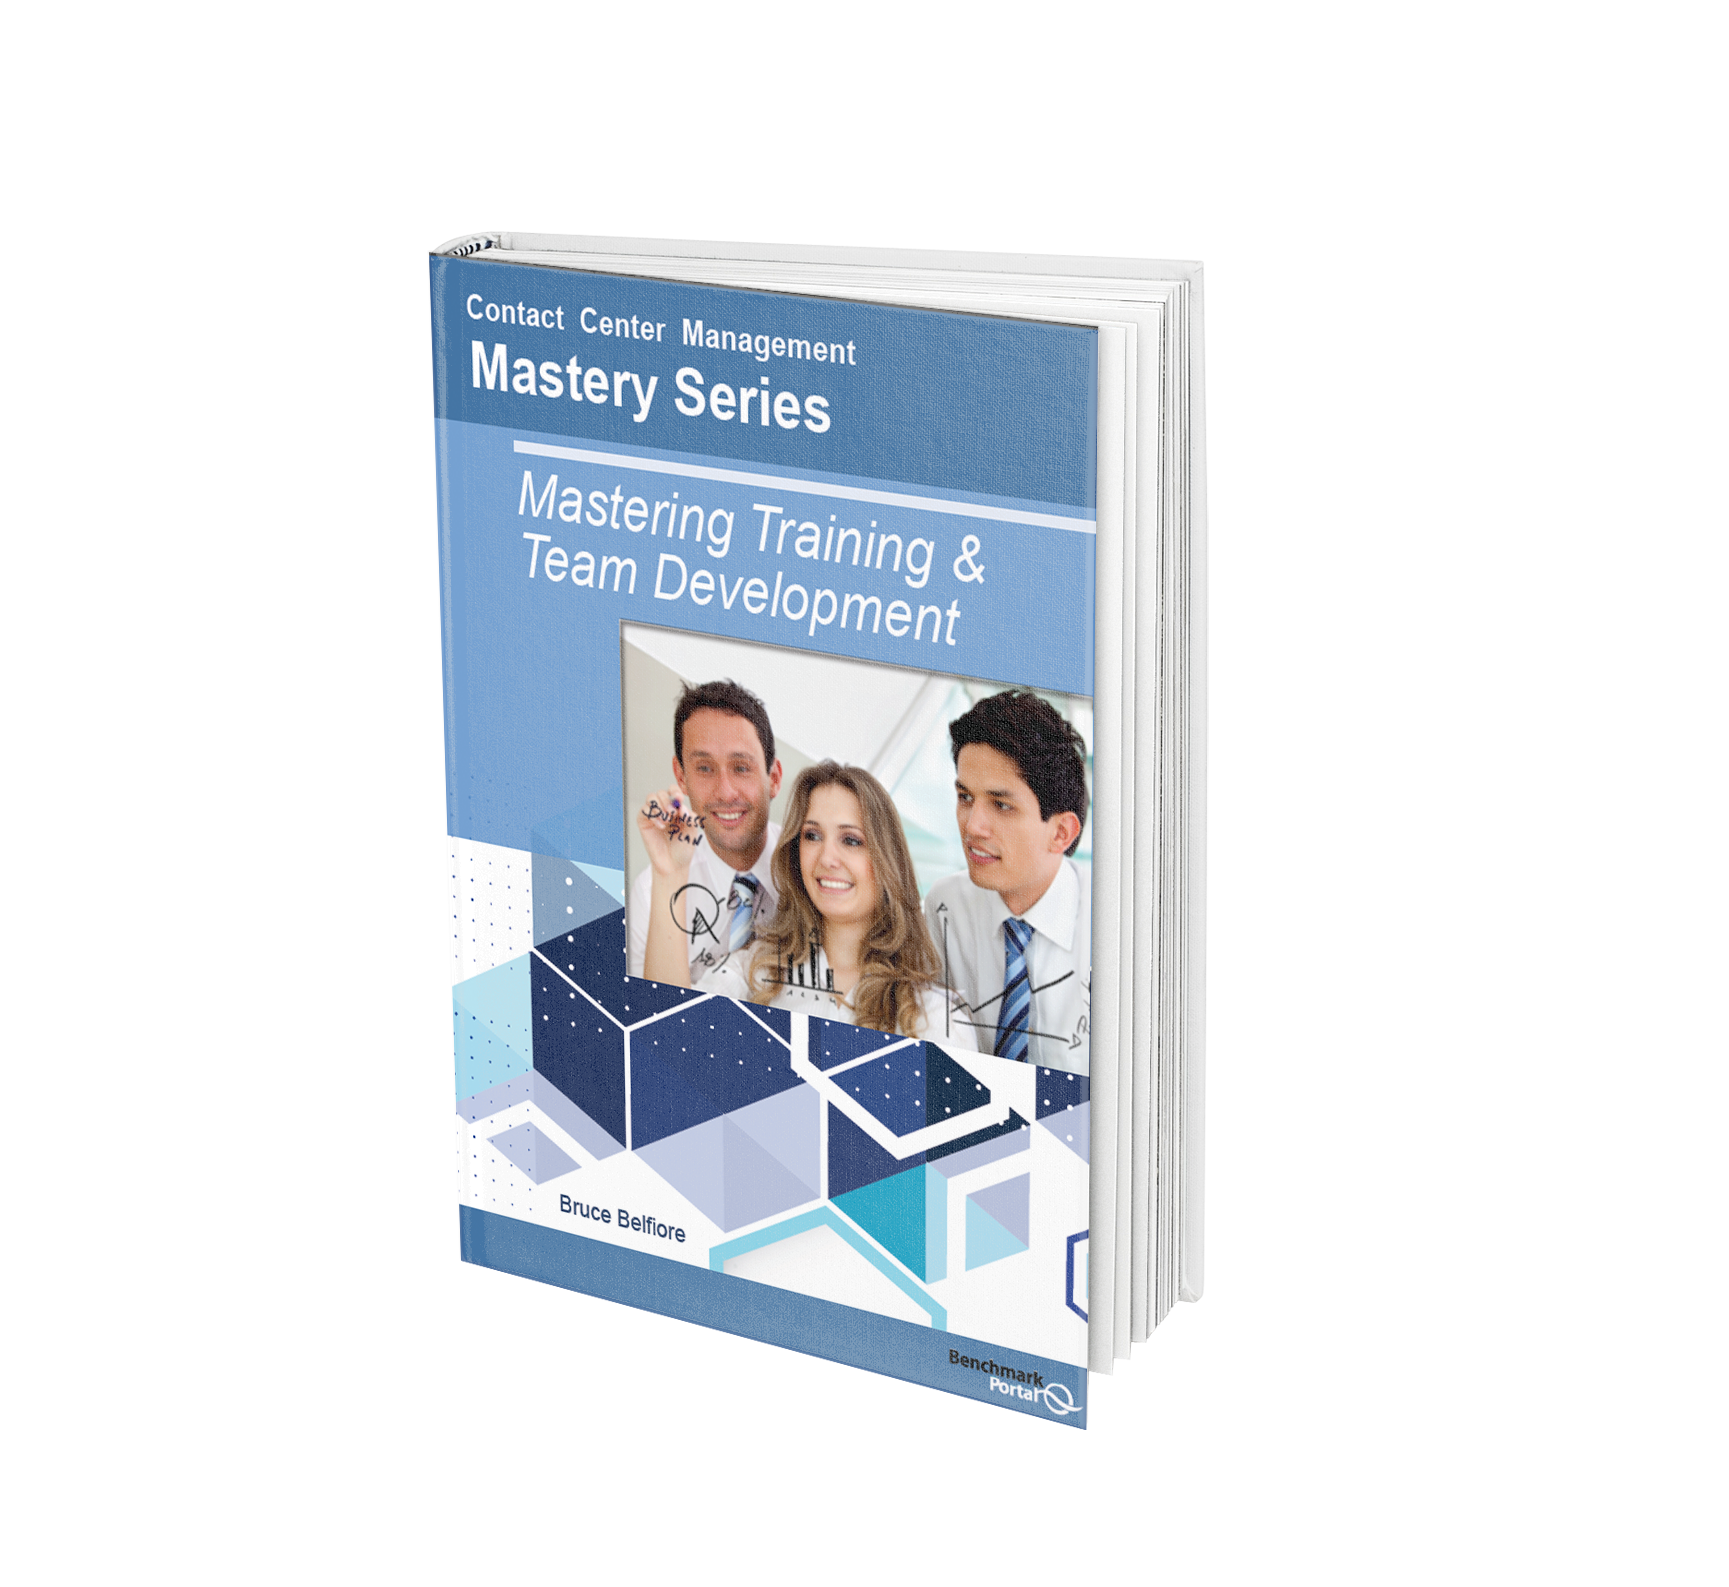 Call Center Training and Team Development Free Download